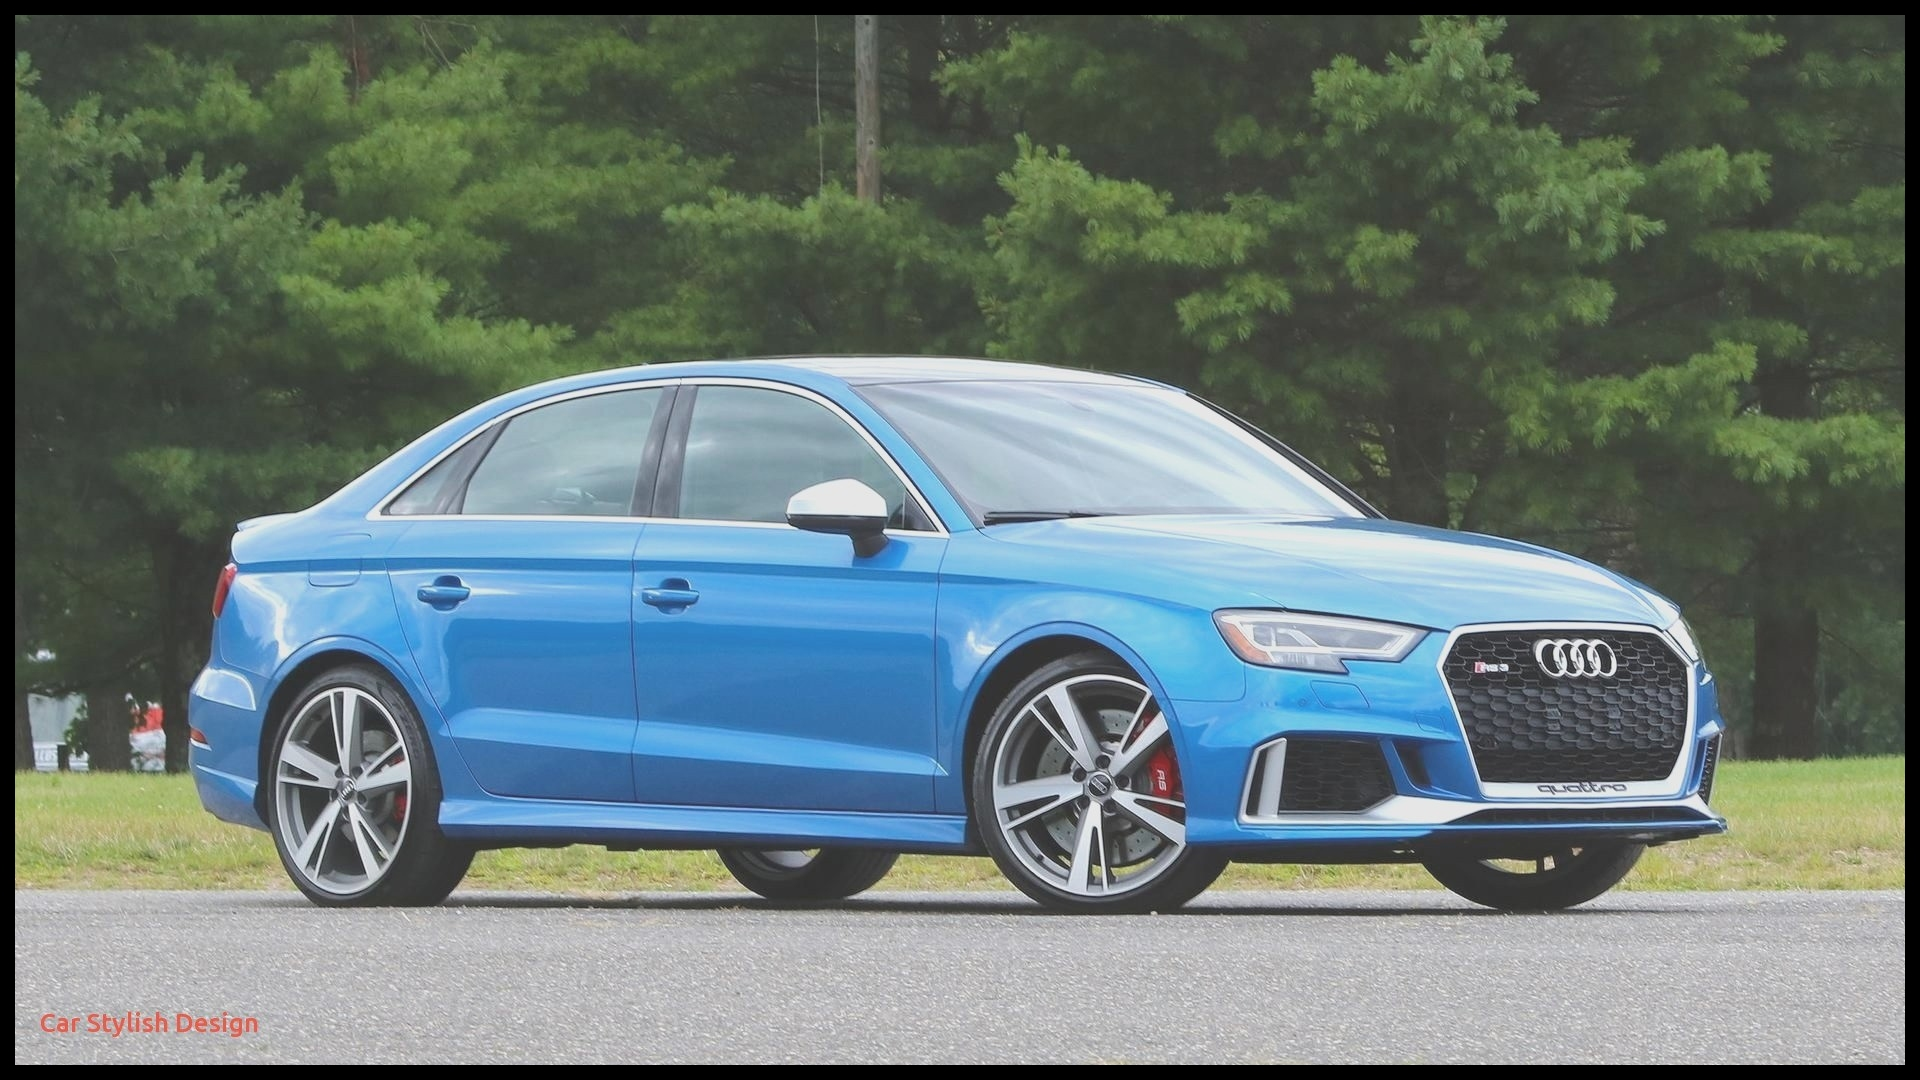 Audi Rs3 2018 Prices Reviews and 5 Breathtaking Audi Rs3 Sedan Price and Review